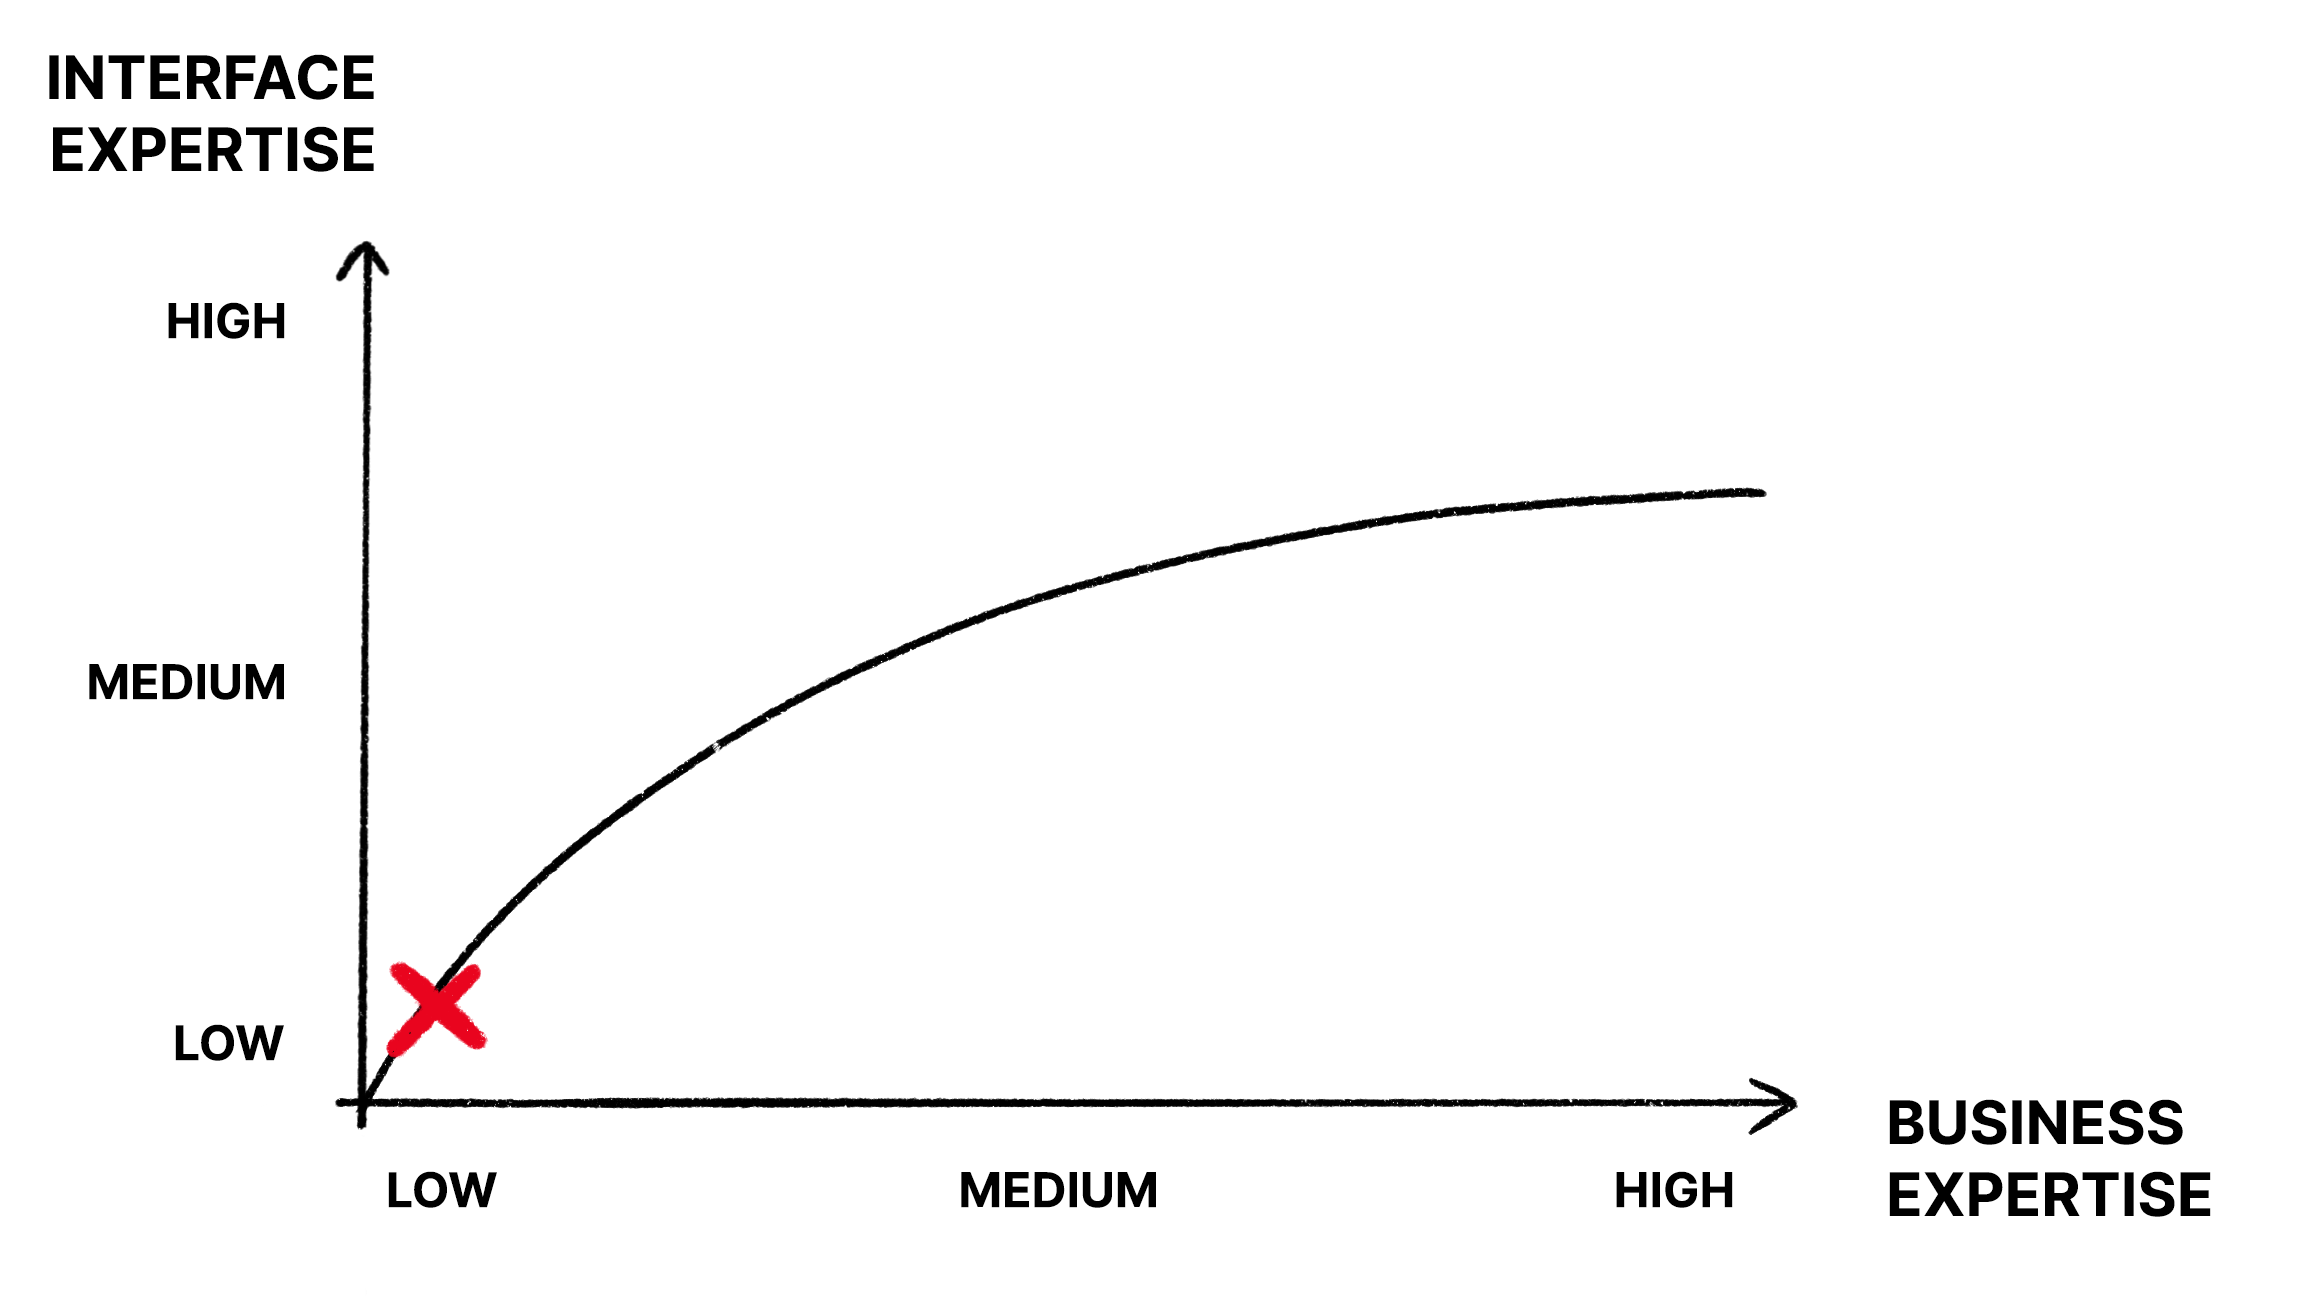 A graph with a mark on low interface expertise and low business expertise.